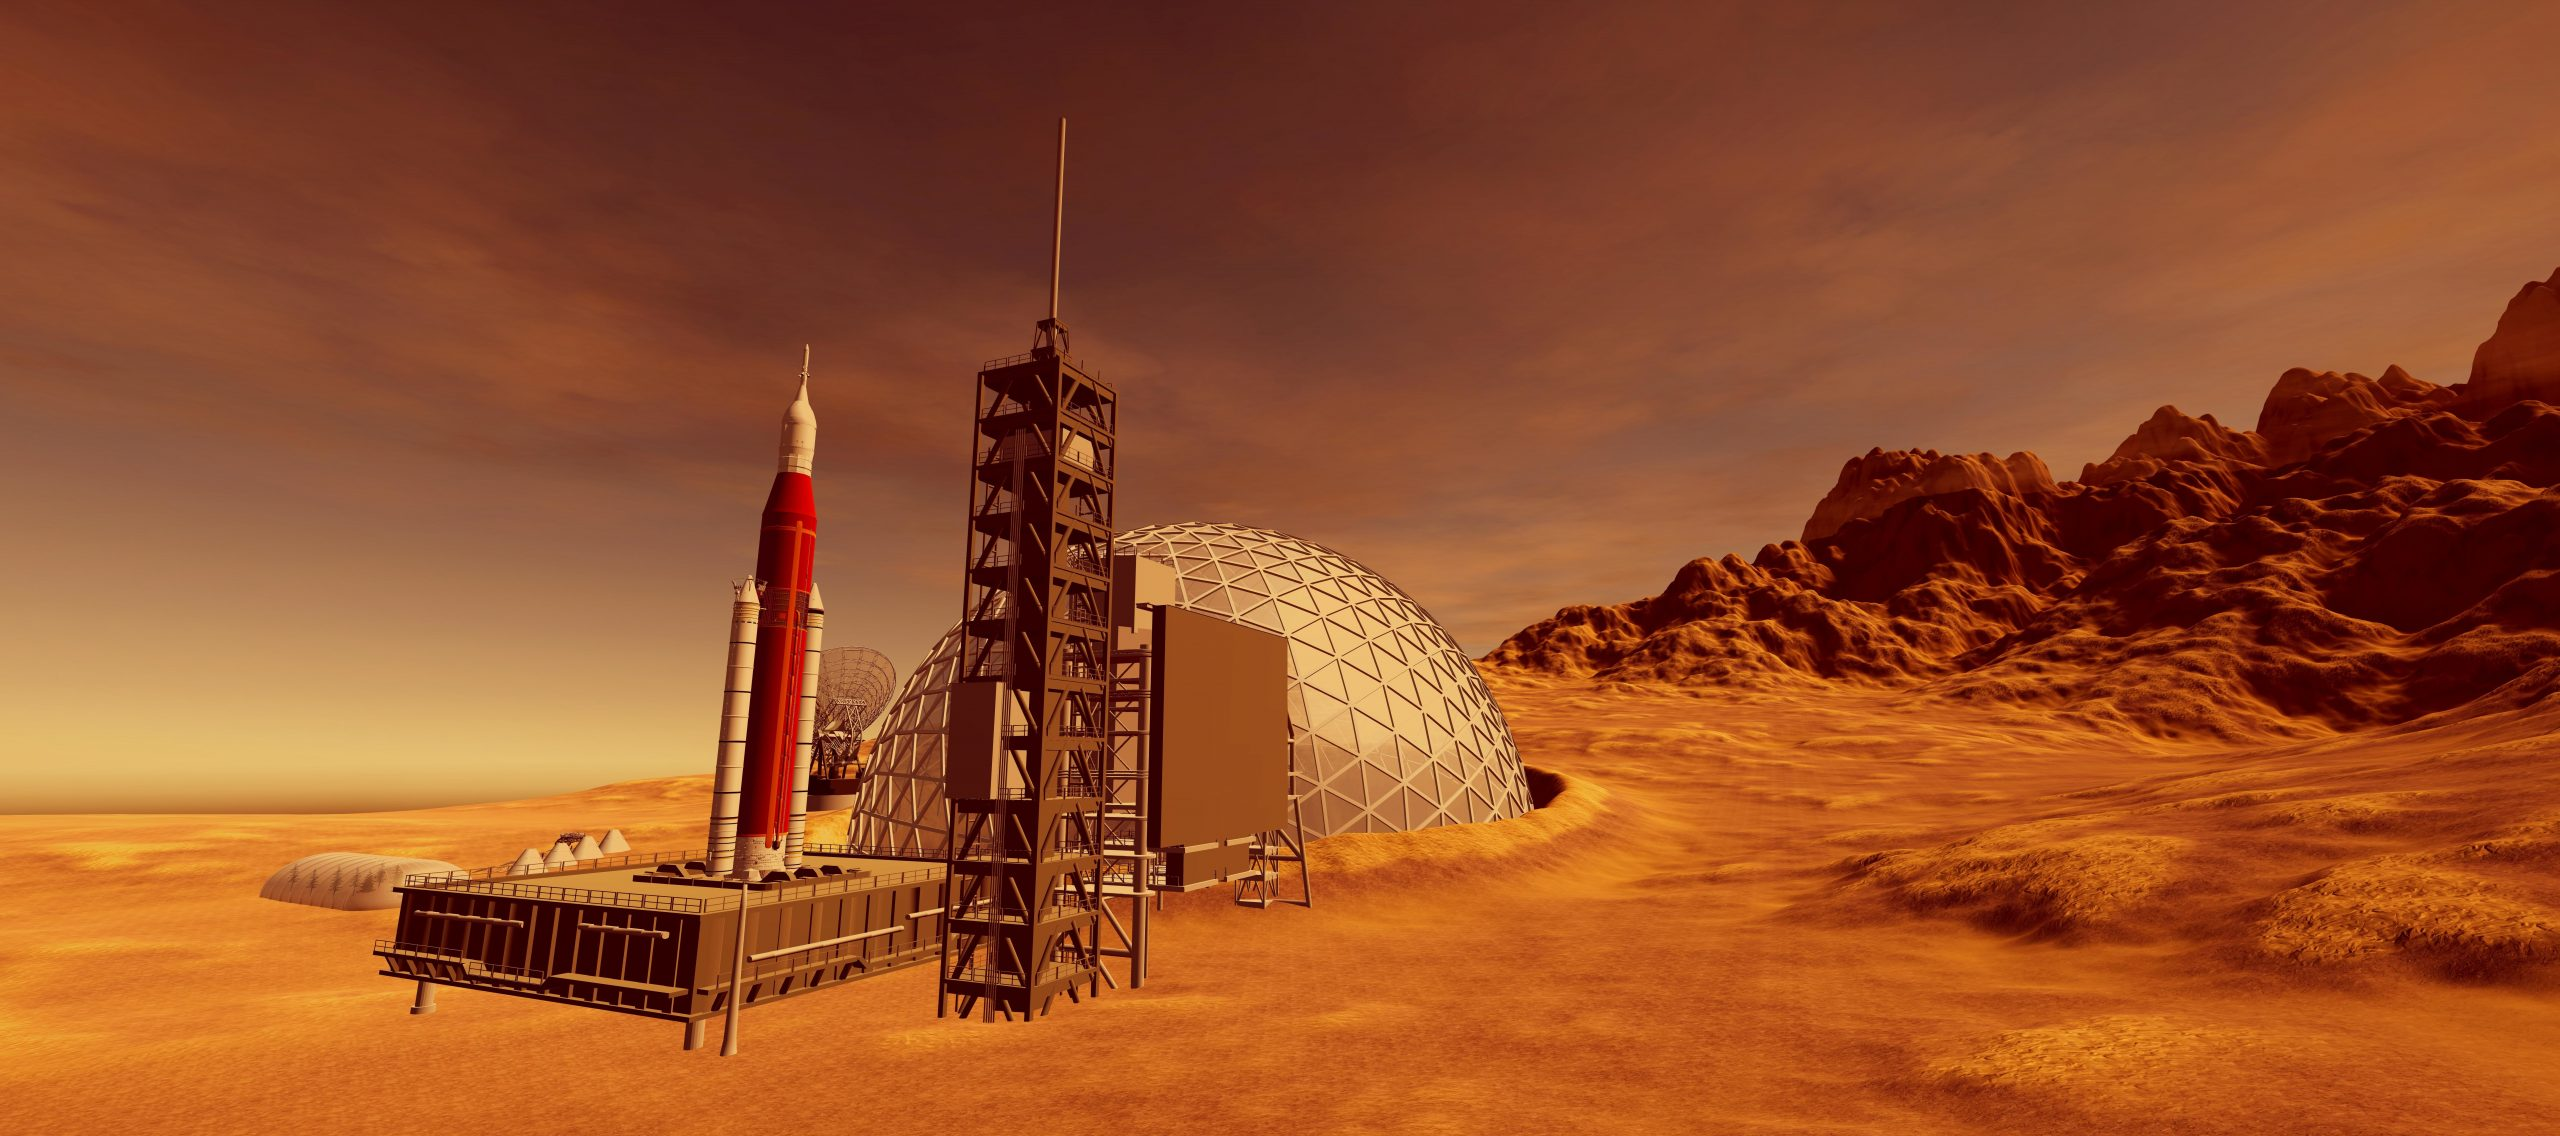 What exactly would a colony on Mars look like and how would it operate?